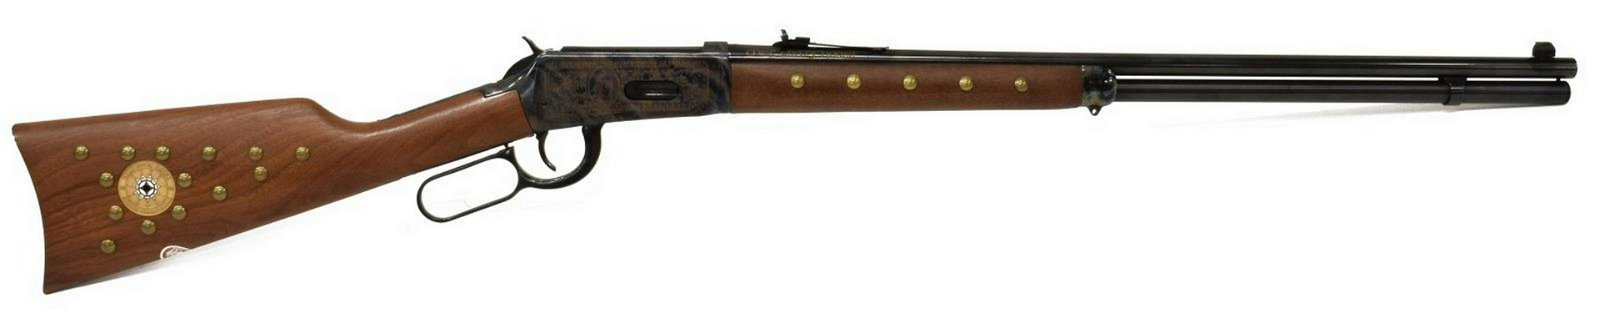 WINCHESTER CHIEF CRAZY HORSE1894 COMM. RIFLE 38-55